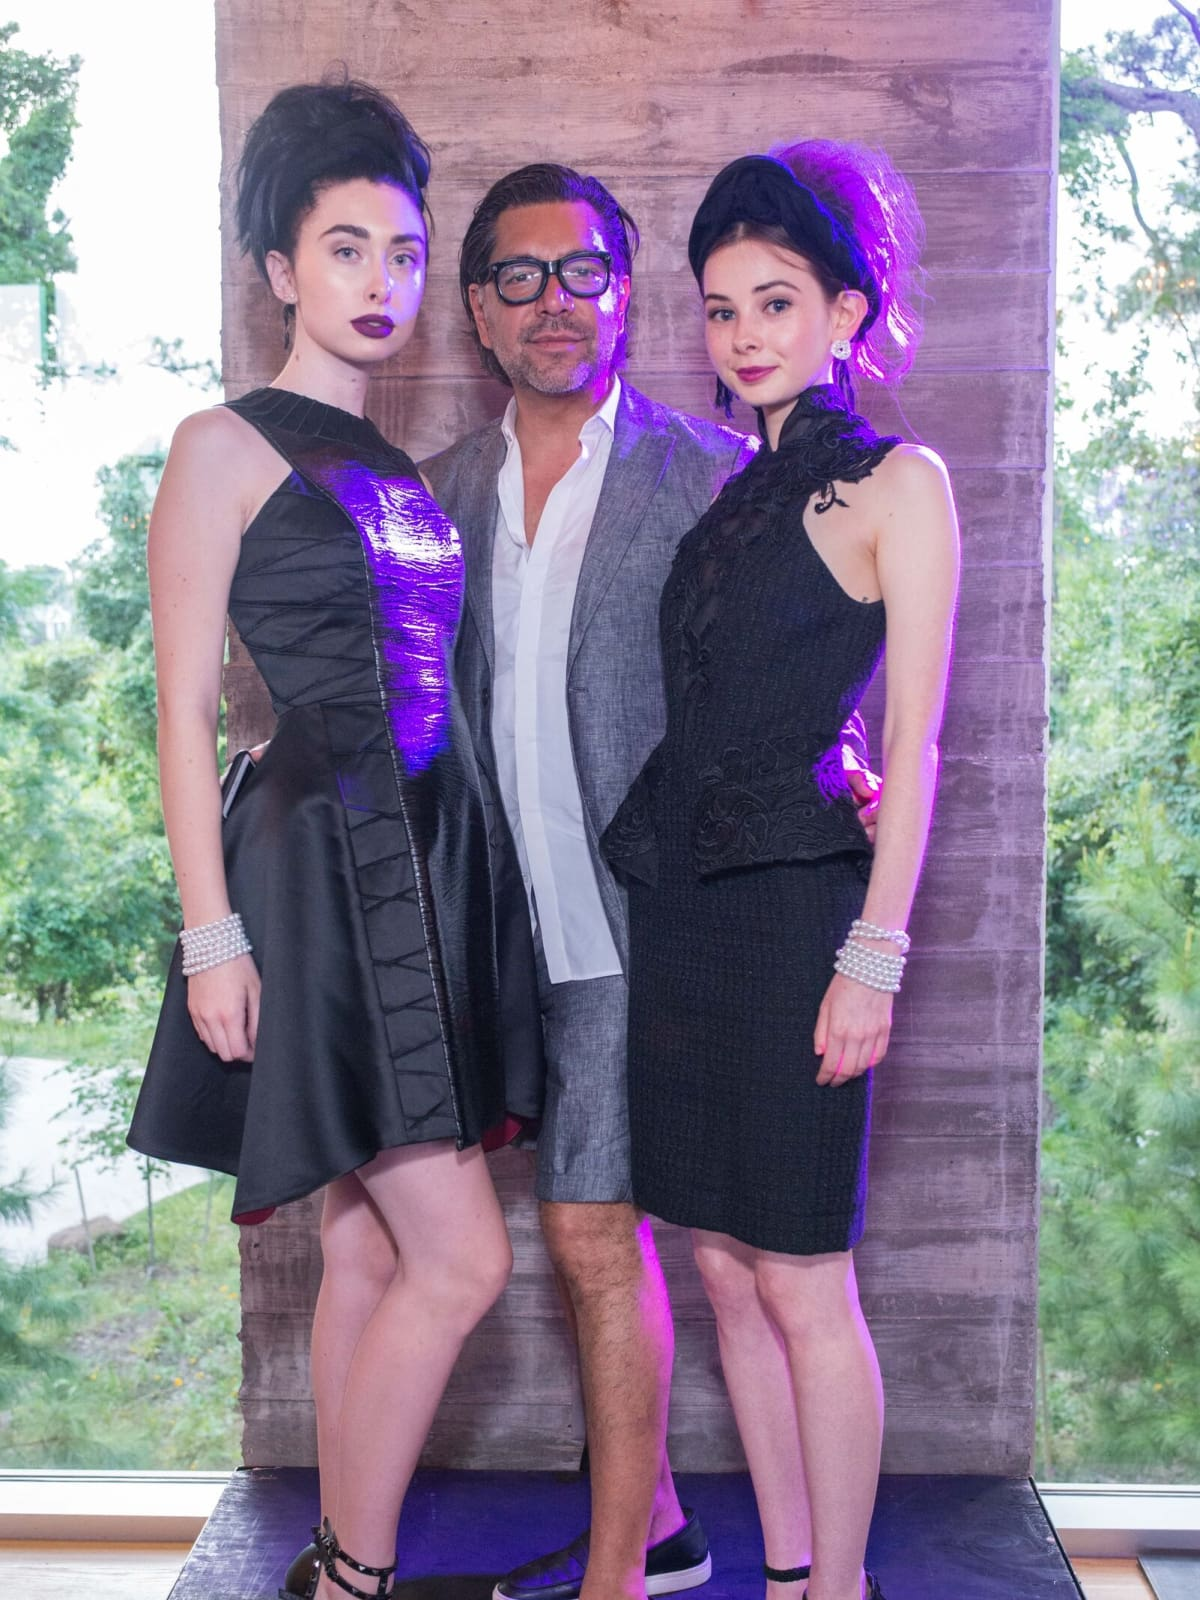 Ceron, Purple party